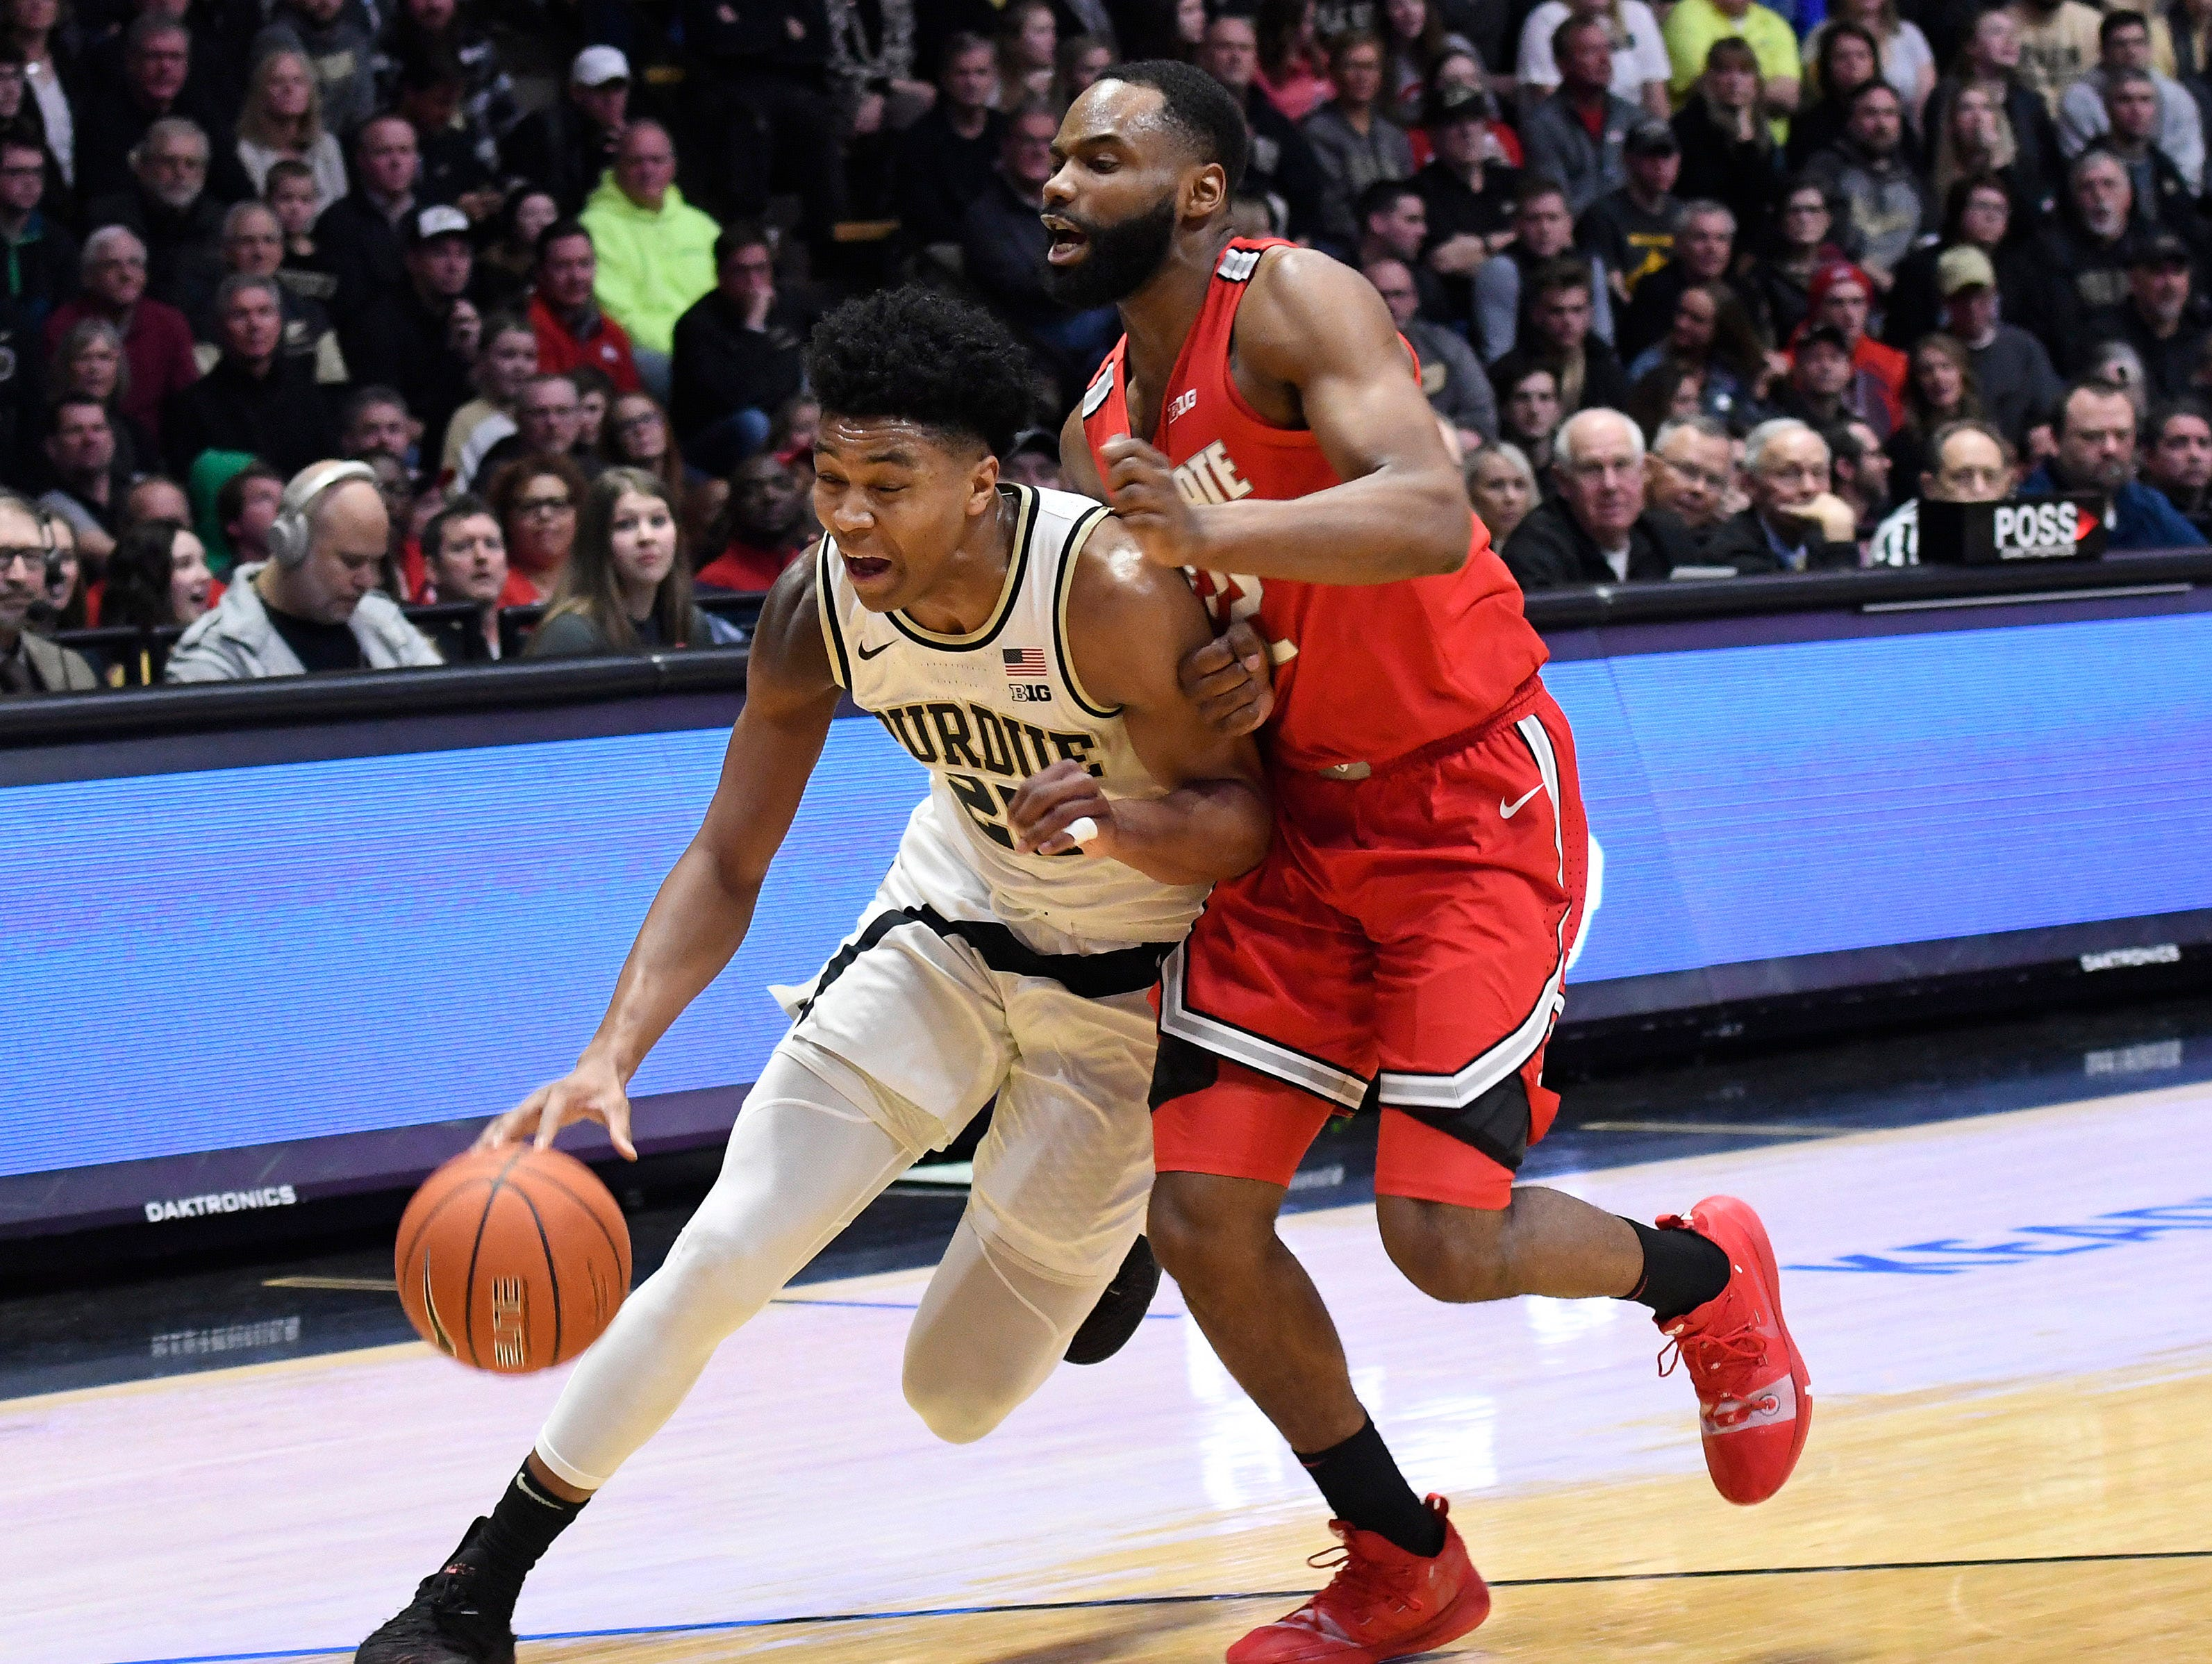 Mar 2, 2019; West Lafayette, IN, USA; Purdue Boilermakers guard Nojel Eastern (20) rives past Ohio State Buckeye defender in the 2nd half at Mackey Arena. Mandatory Credit: Sandra Dukes-USA TODAY Sports